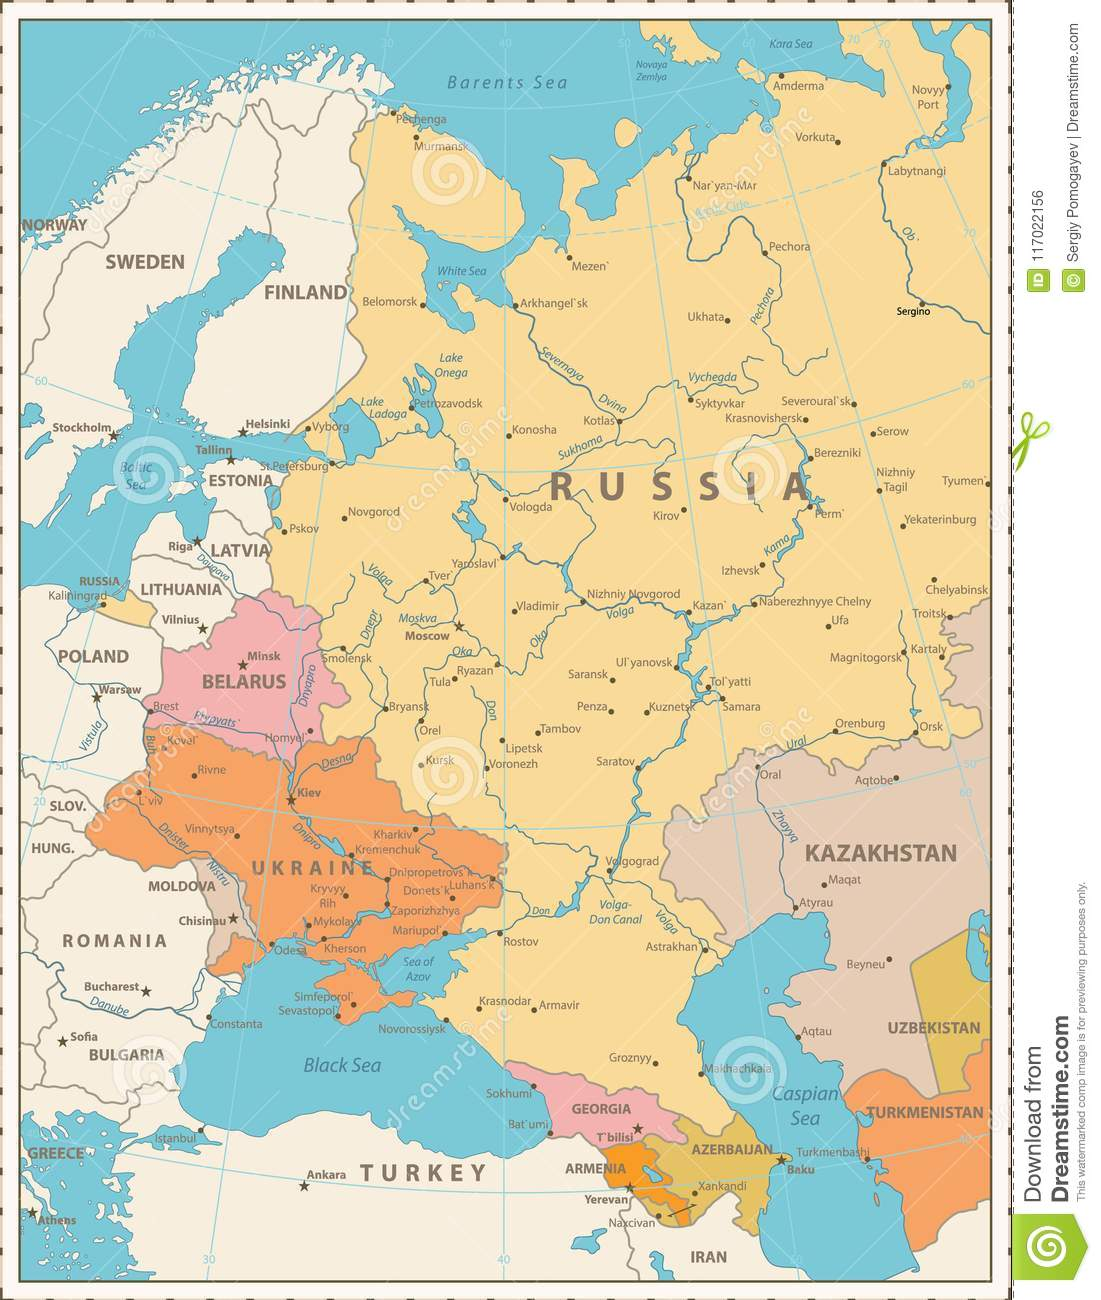 Eastern Europe Political Map Retro Colors Stock Vector ... on topological map of eastern europe, geography map of eastern europe, geopolitical map of central europe, geological map of eastern europe, tactical map of eastern europe, history map of eastern europe, ethnic map of eastern europe, ecological map of eastern europe, strategic map of eastern europe,